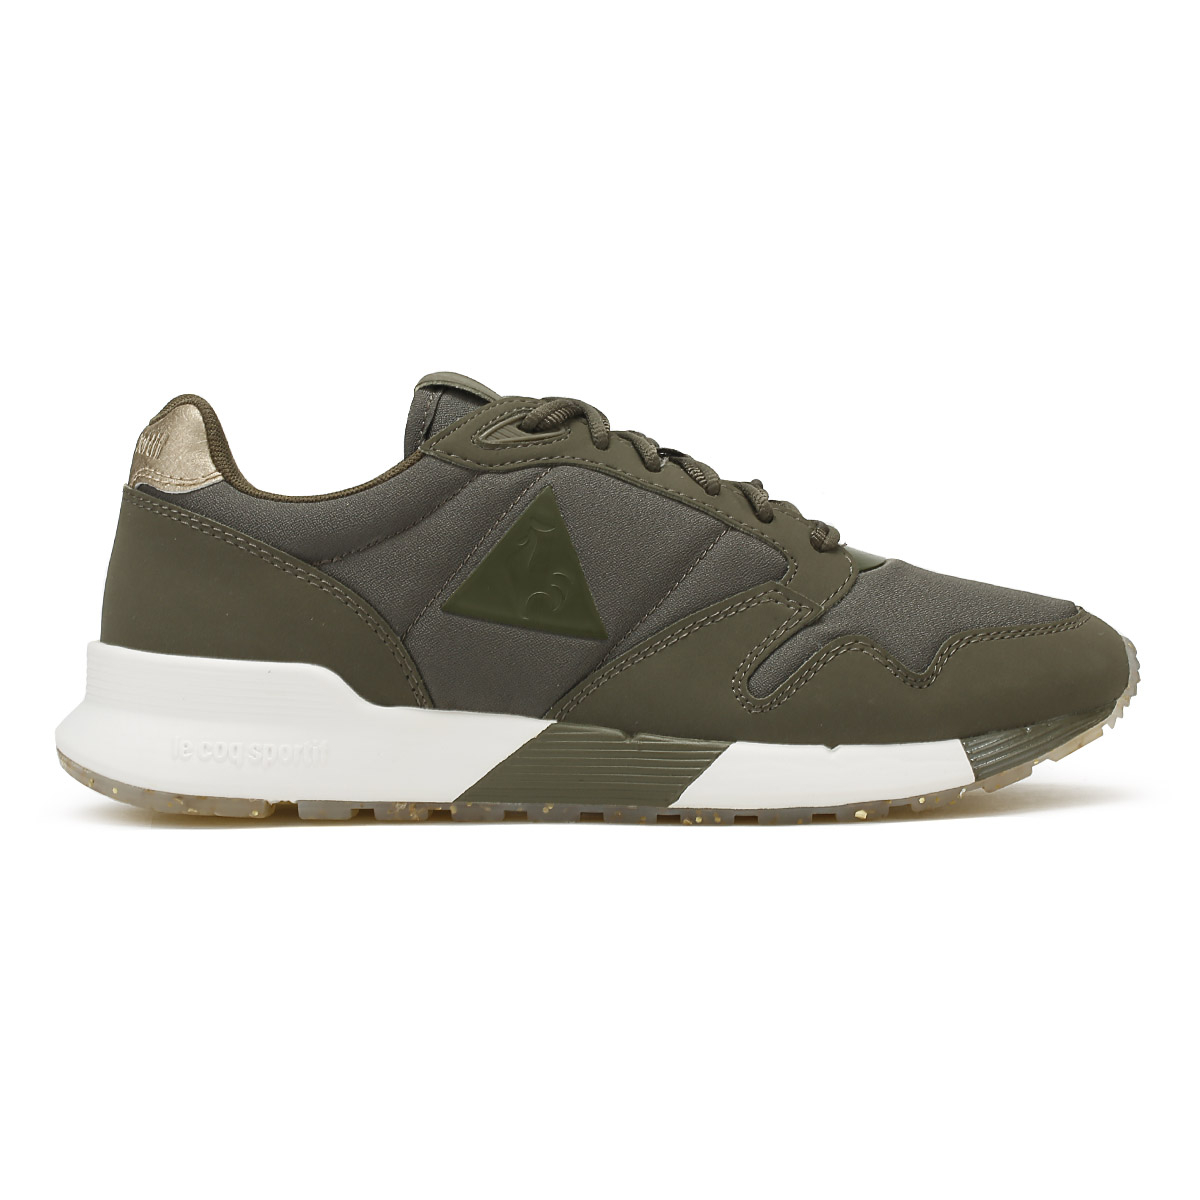 9f3af2f29e8f Women s Le COQ Sportif Omega X W Metallic Low Rise Trainers in Green ...